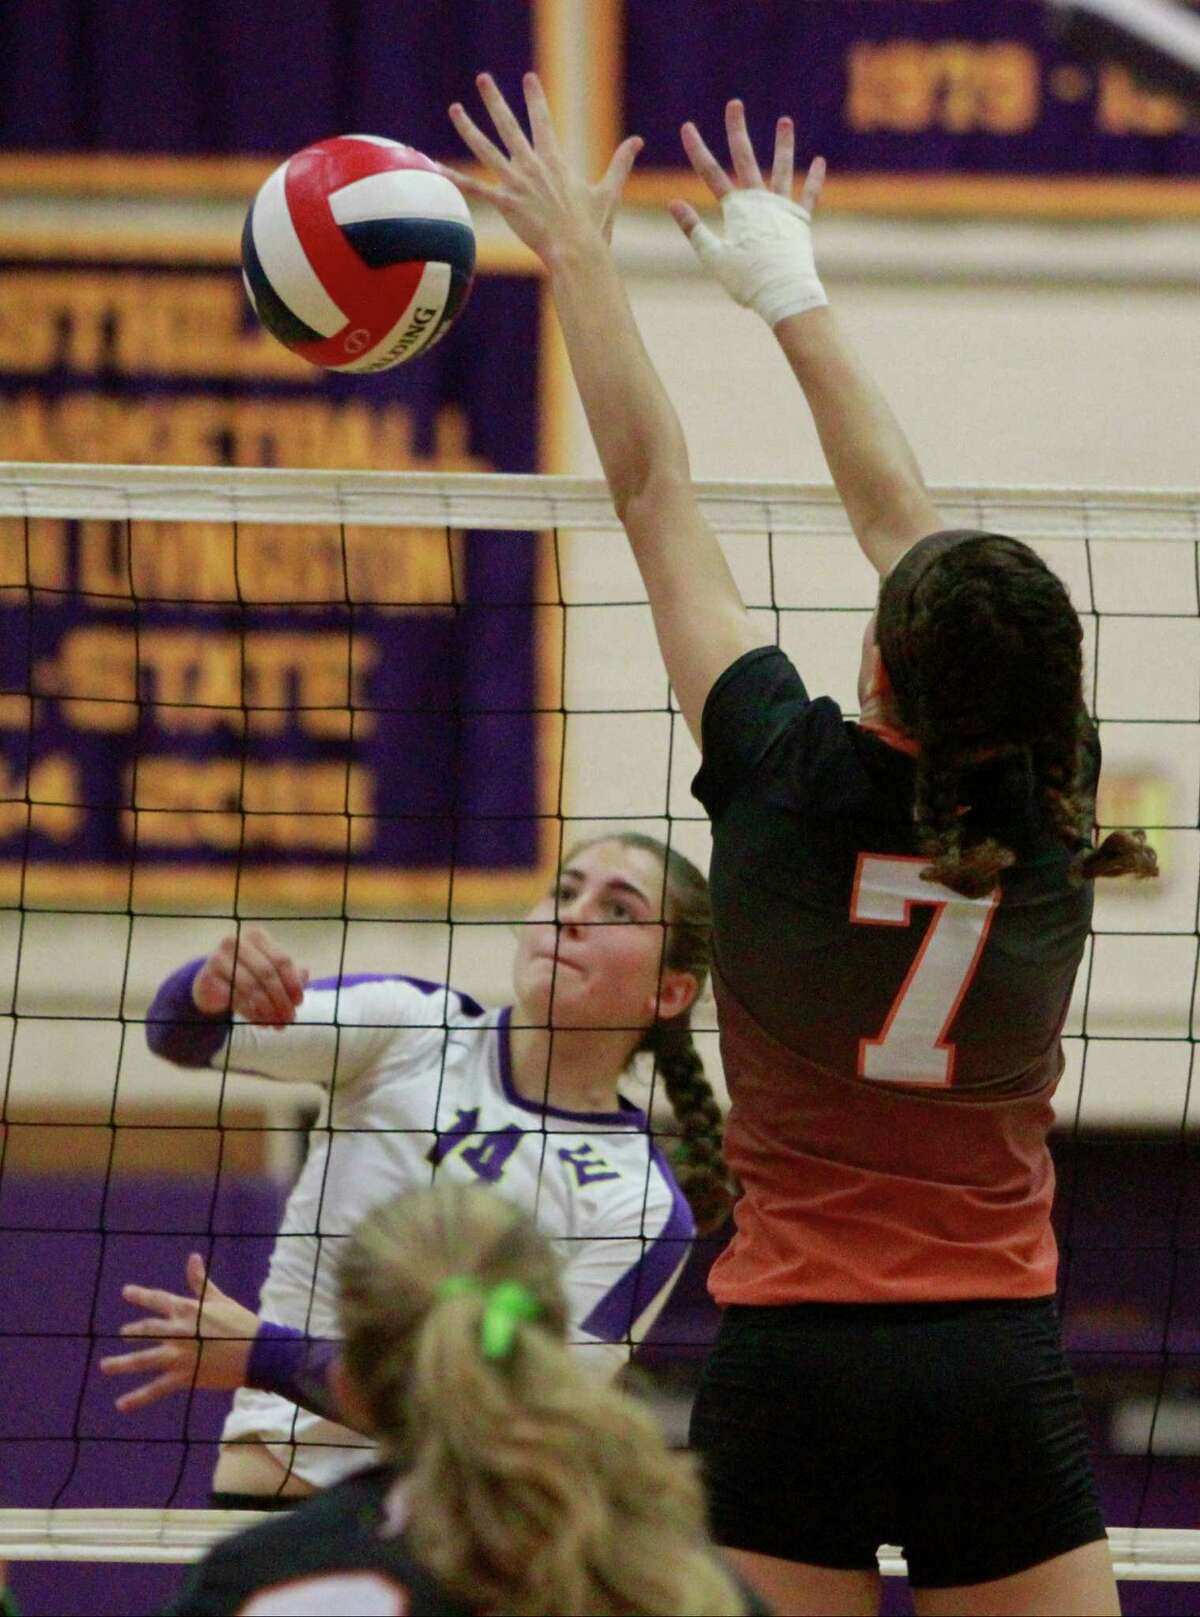 Westhill's Andriana Gambino hits the ball past Stamford's Andrea O'Conner during a varsity girls volletball match in Stamford, Conn. on Oct.13, 2015. Stamford sweep Westhill in three sets, 25-13, 25-20, 25-9 to win the city title in girls volleyball.